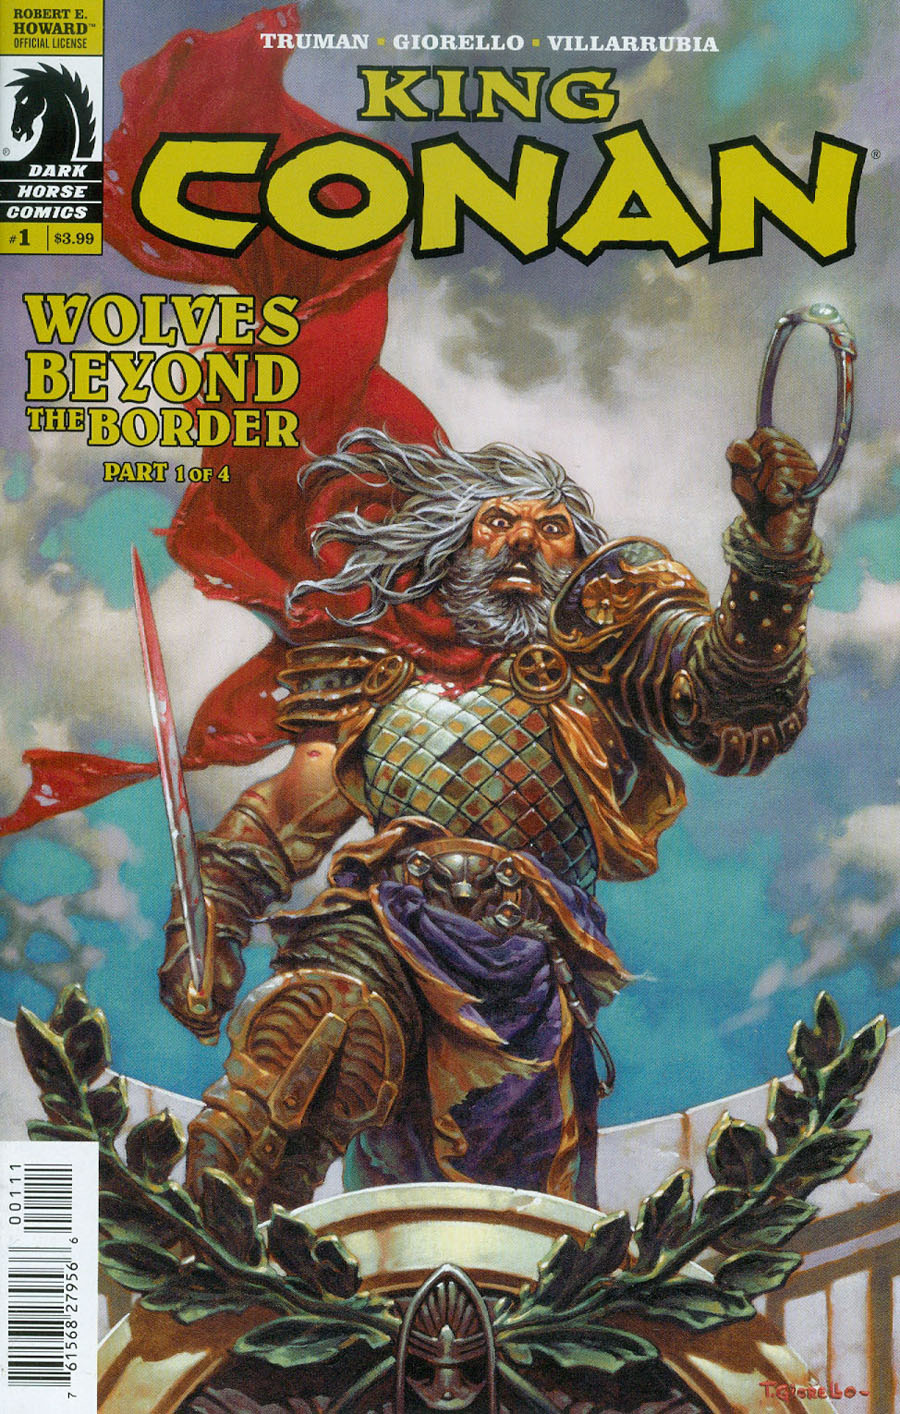 King Conan Wolves Beyond The Border #1